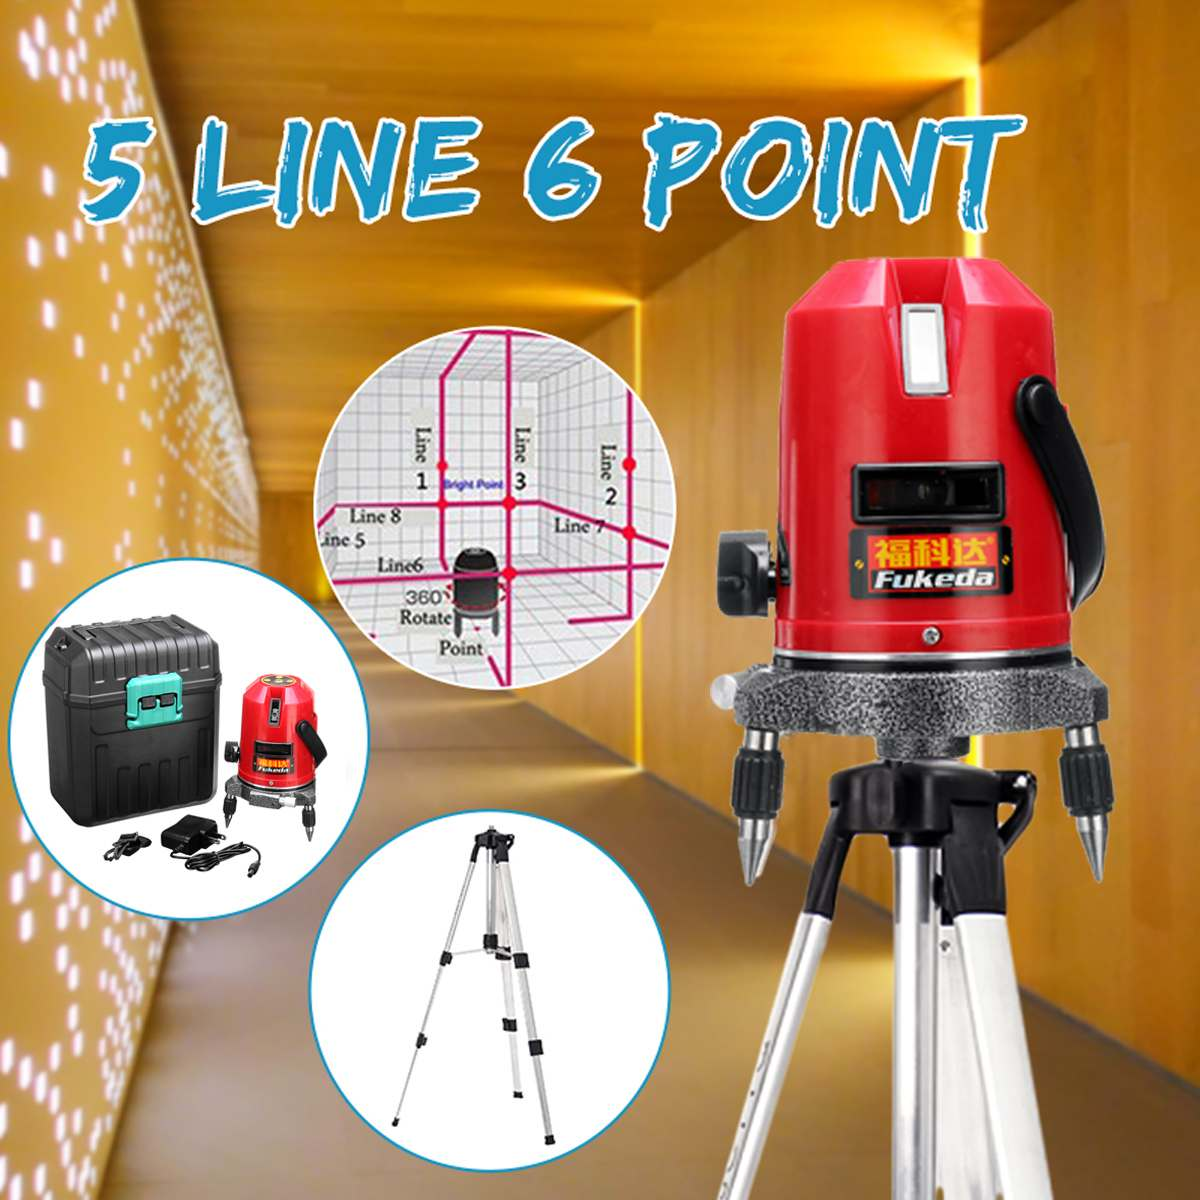 Professional Automatic Self Leveling 5 Line 6 Point 4V1H Laser Level Measure + 1M Tripod Level Stand Professional Automatic Self Leveling 5 Line 6 Point 4V1H Laser Level Measure + 1M Tripod Level Stand